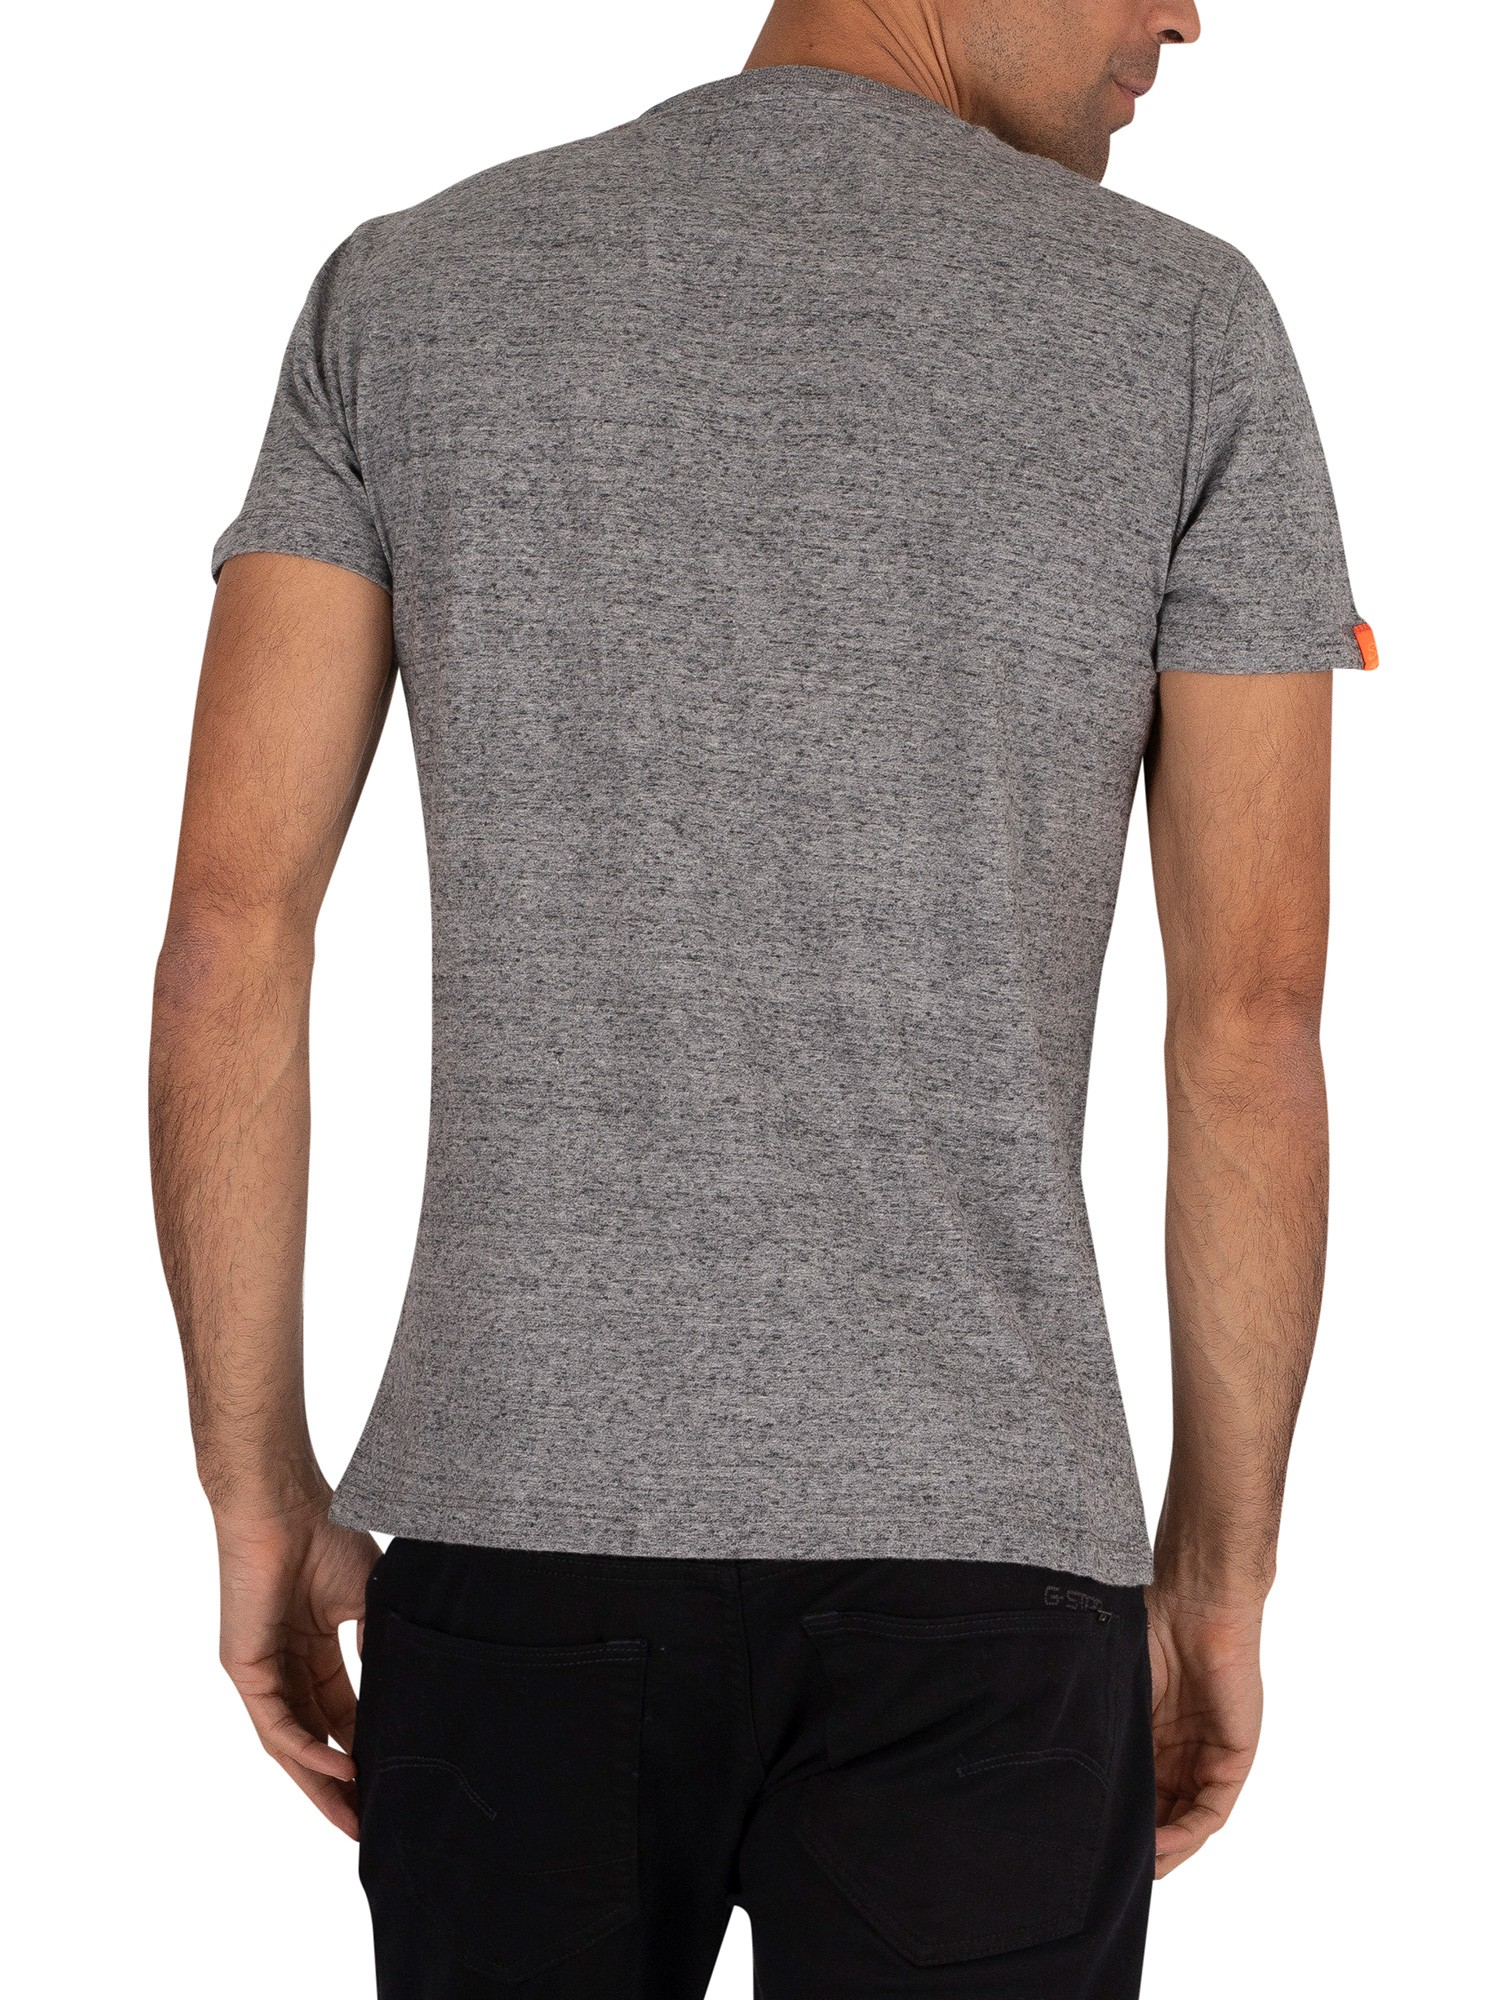 Superdry Orange Label Vintage EMB T-Shirt - Flint Steel Grit